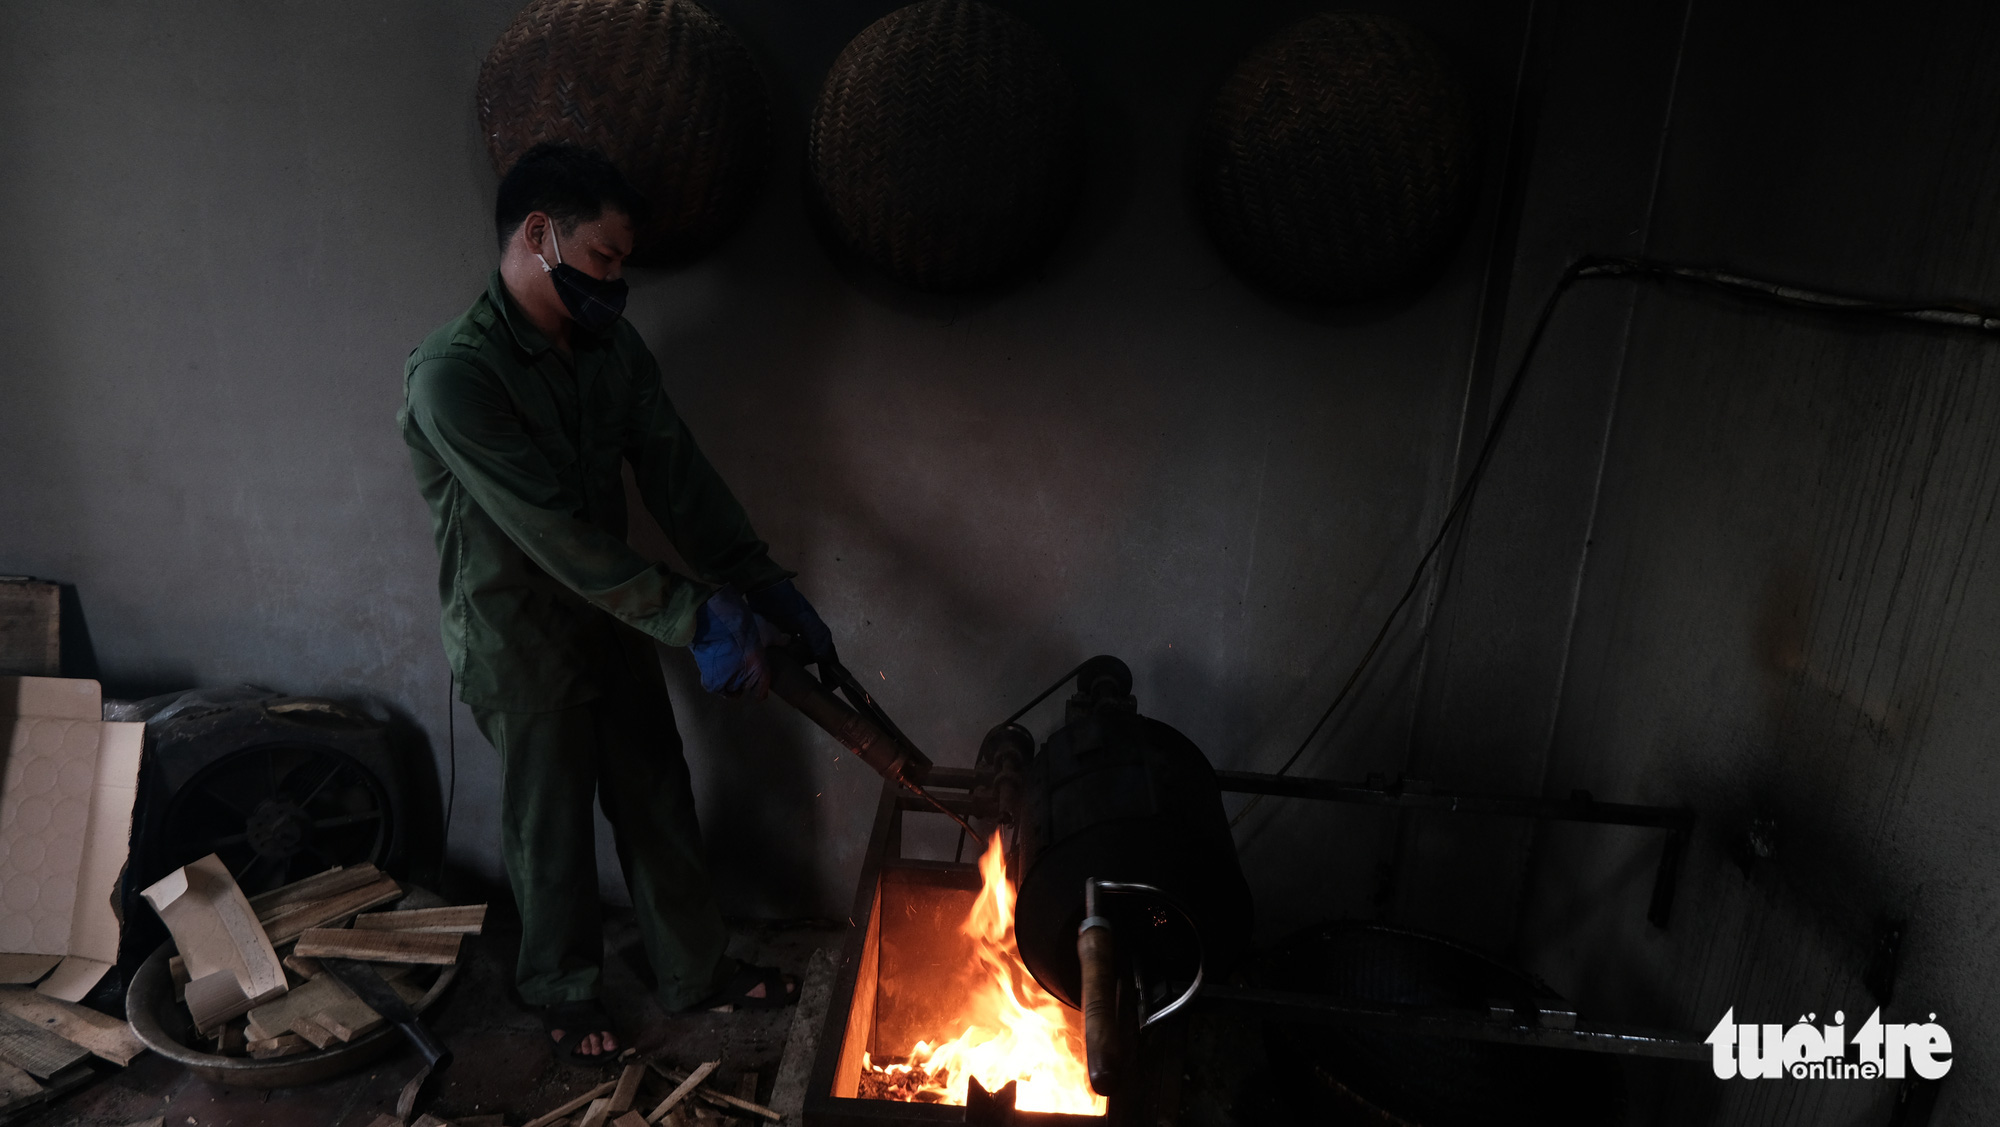 An employee hand-roasts coffee beans on a wood-fired stove in the kitchen of Thai Café on Trieu Viet Vuong Street in Hai Ba Trung District, Hanoi. Photo: Ha Thanh / Tuoi Tre